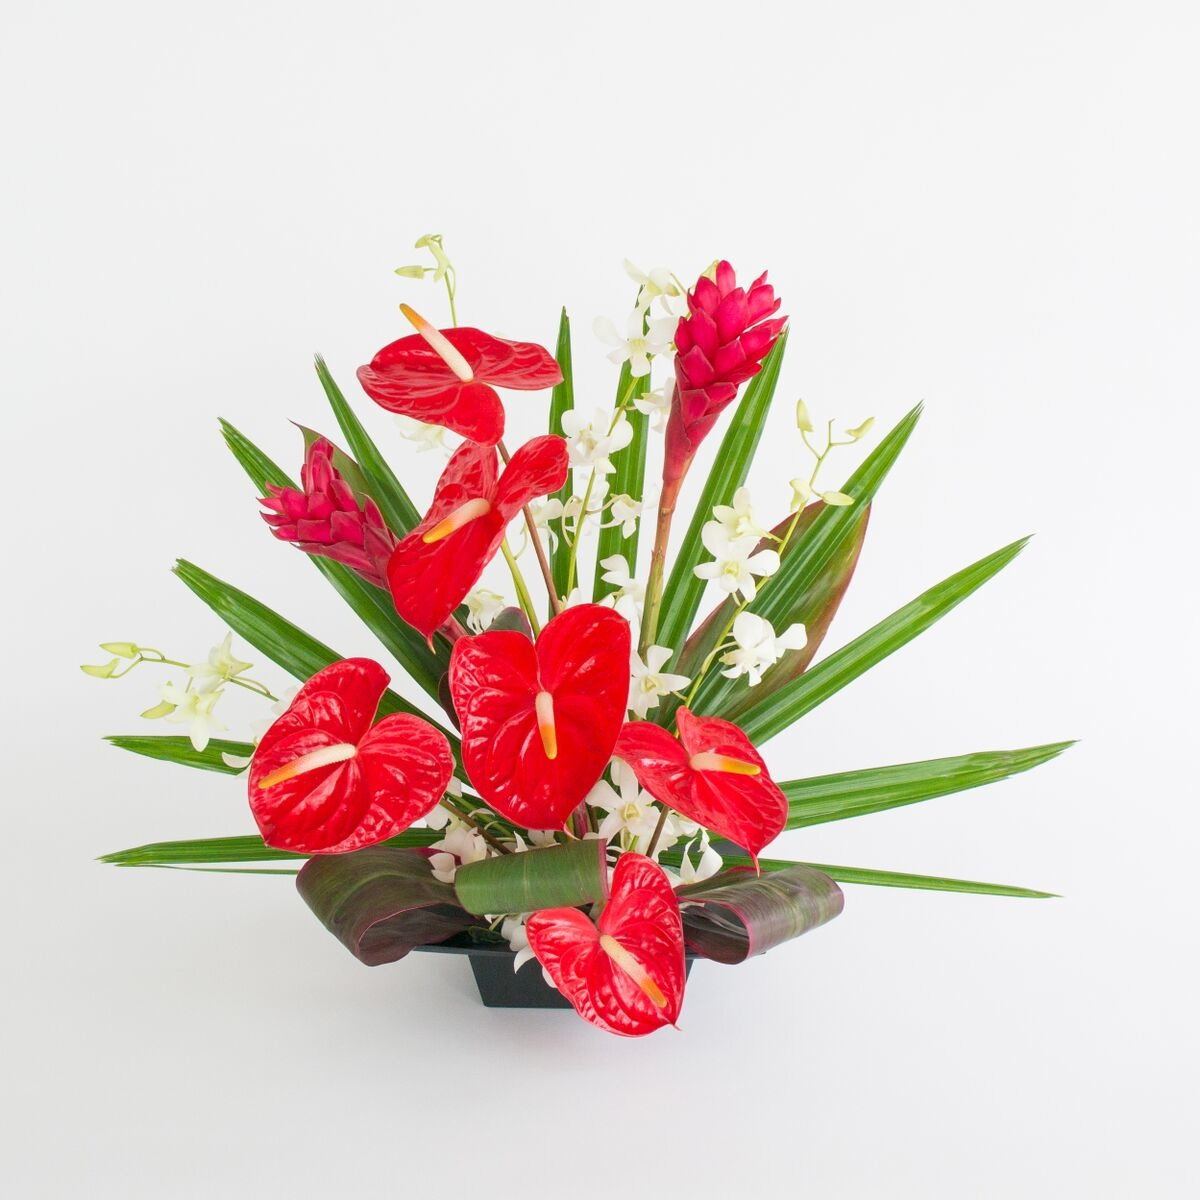 Fire And White Snow Hawaiian Flower Assortment